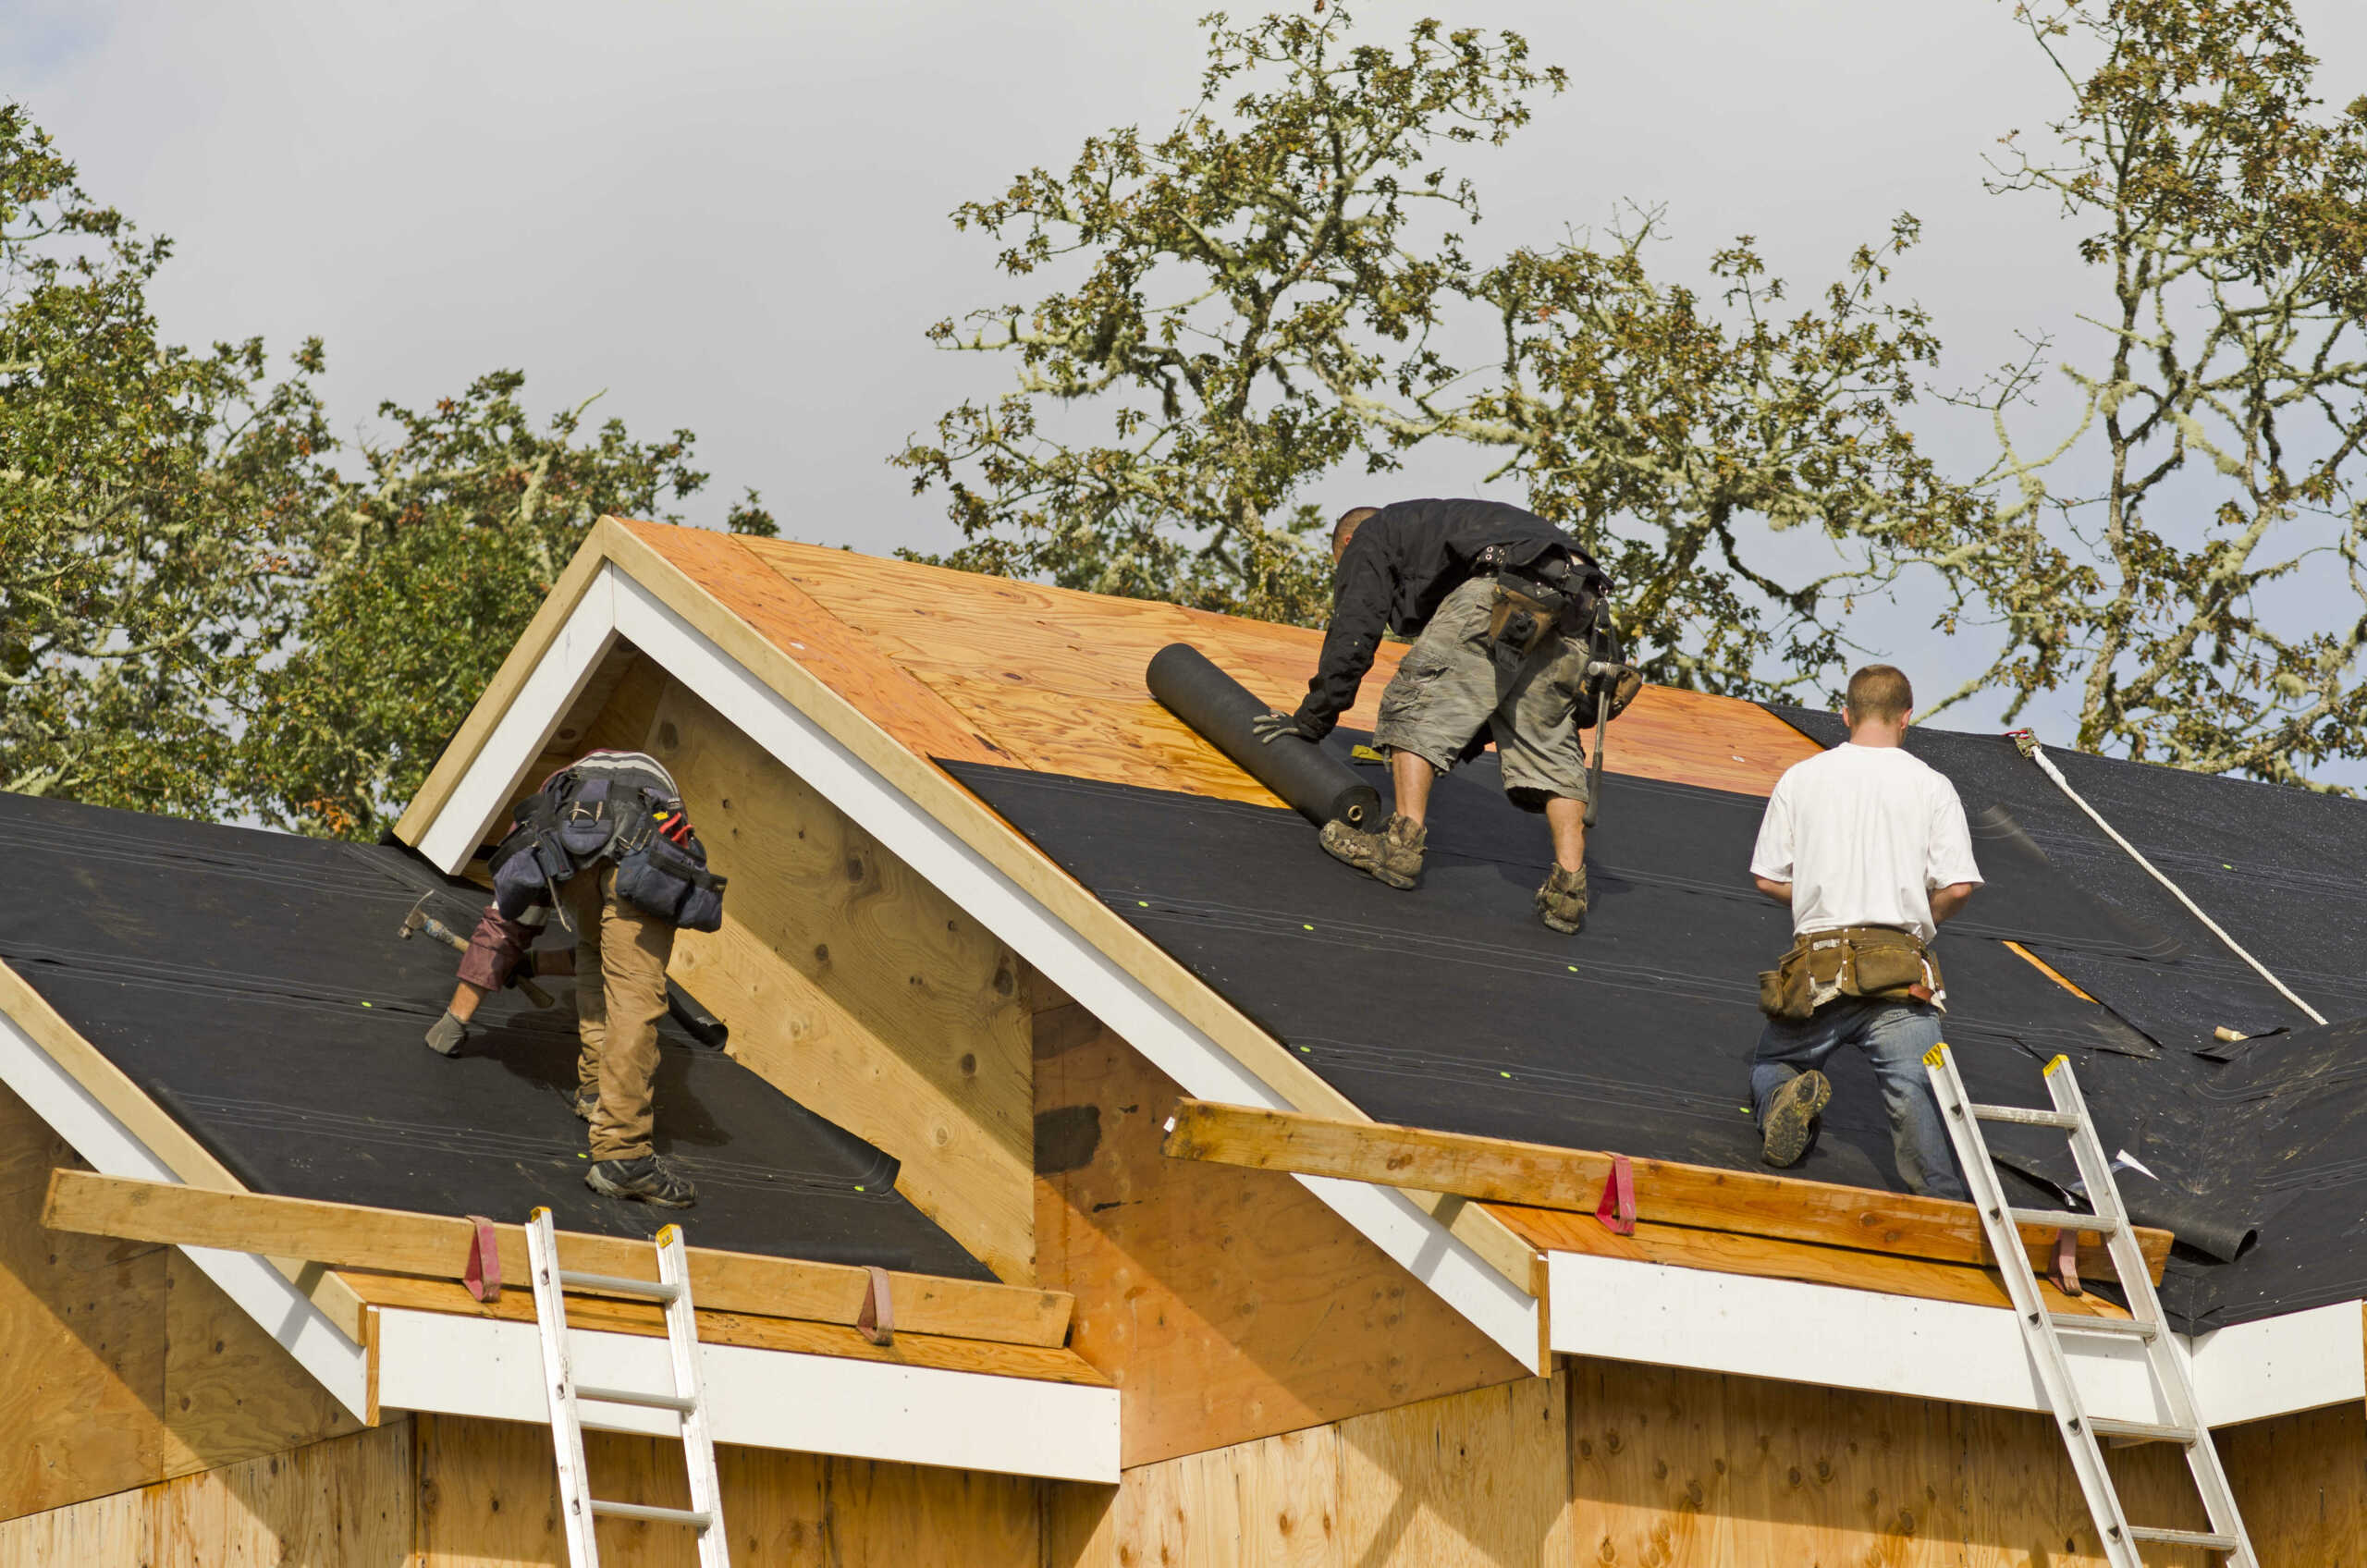 Winston-Salem-Roofing-Company-staying-safe-and-working-During-Coronavirus